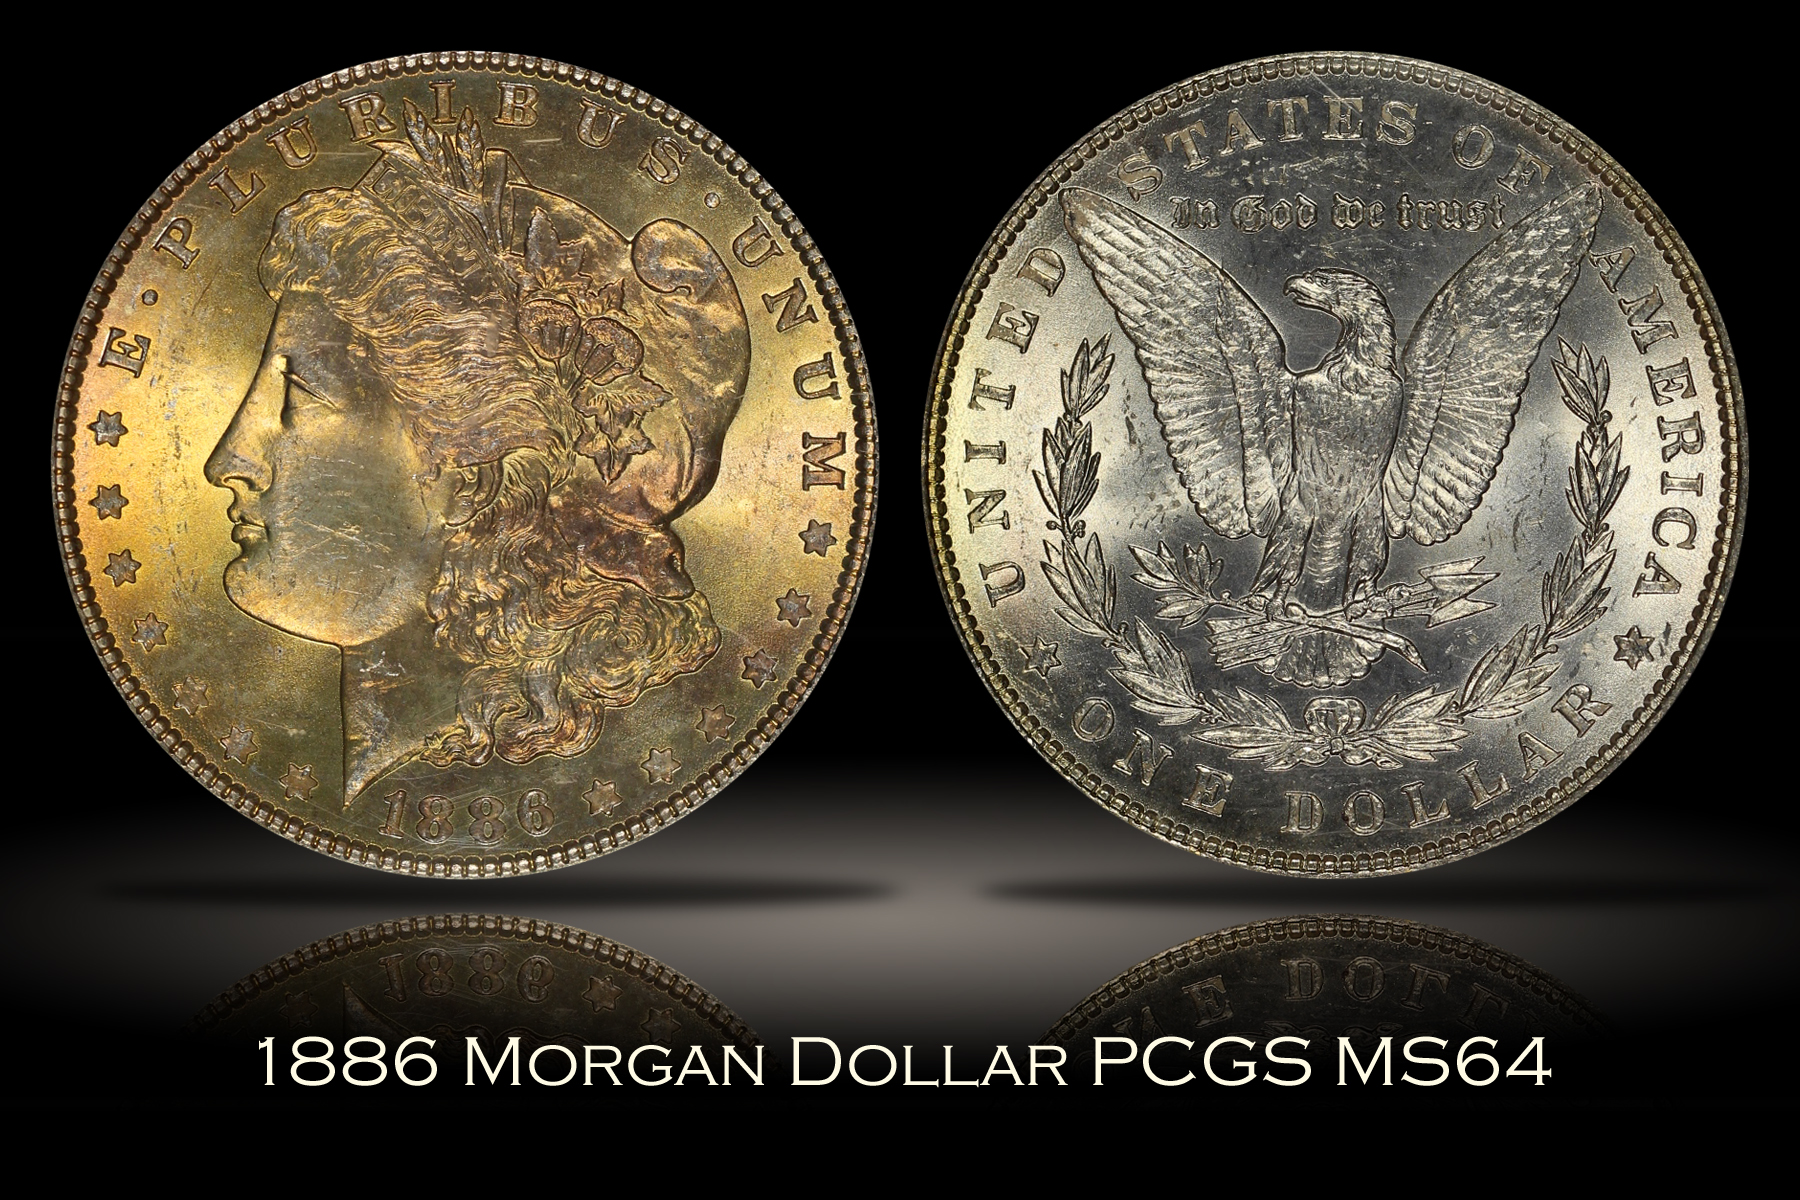 1886 Morgan Dollar PCGS MS64 OGH